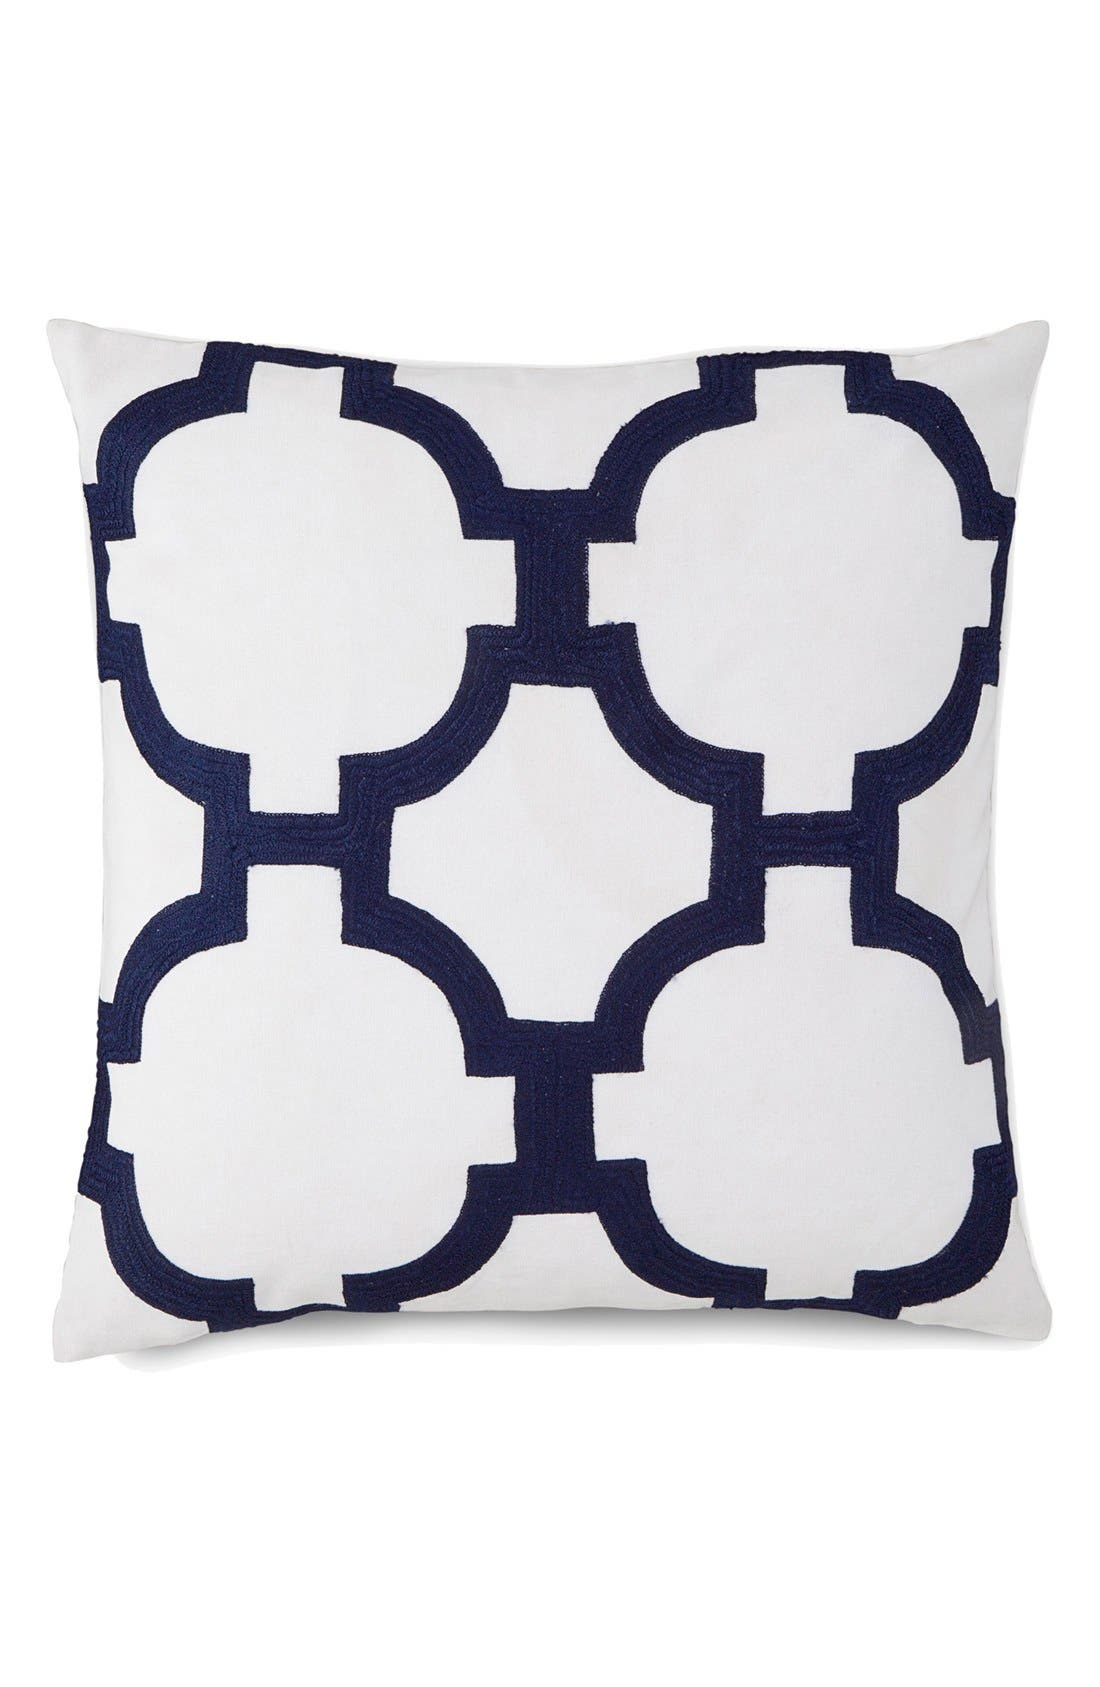 'Embroidered Links' Pillow,                         Main,                         color, White/ Navy